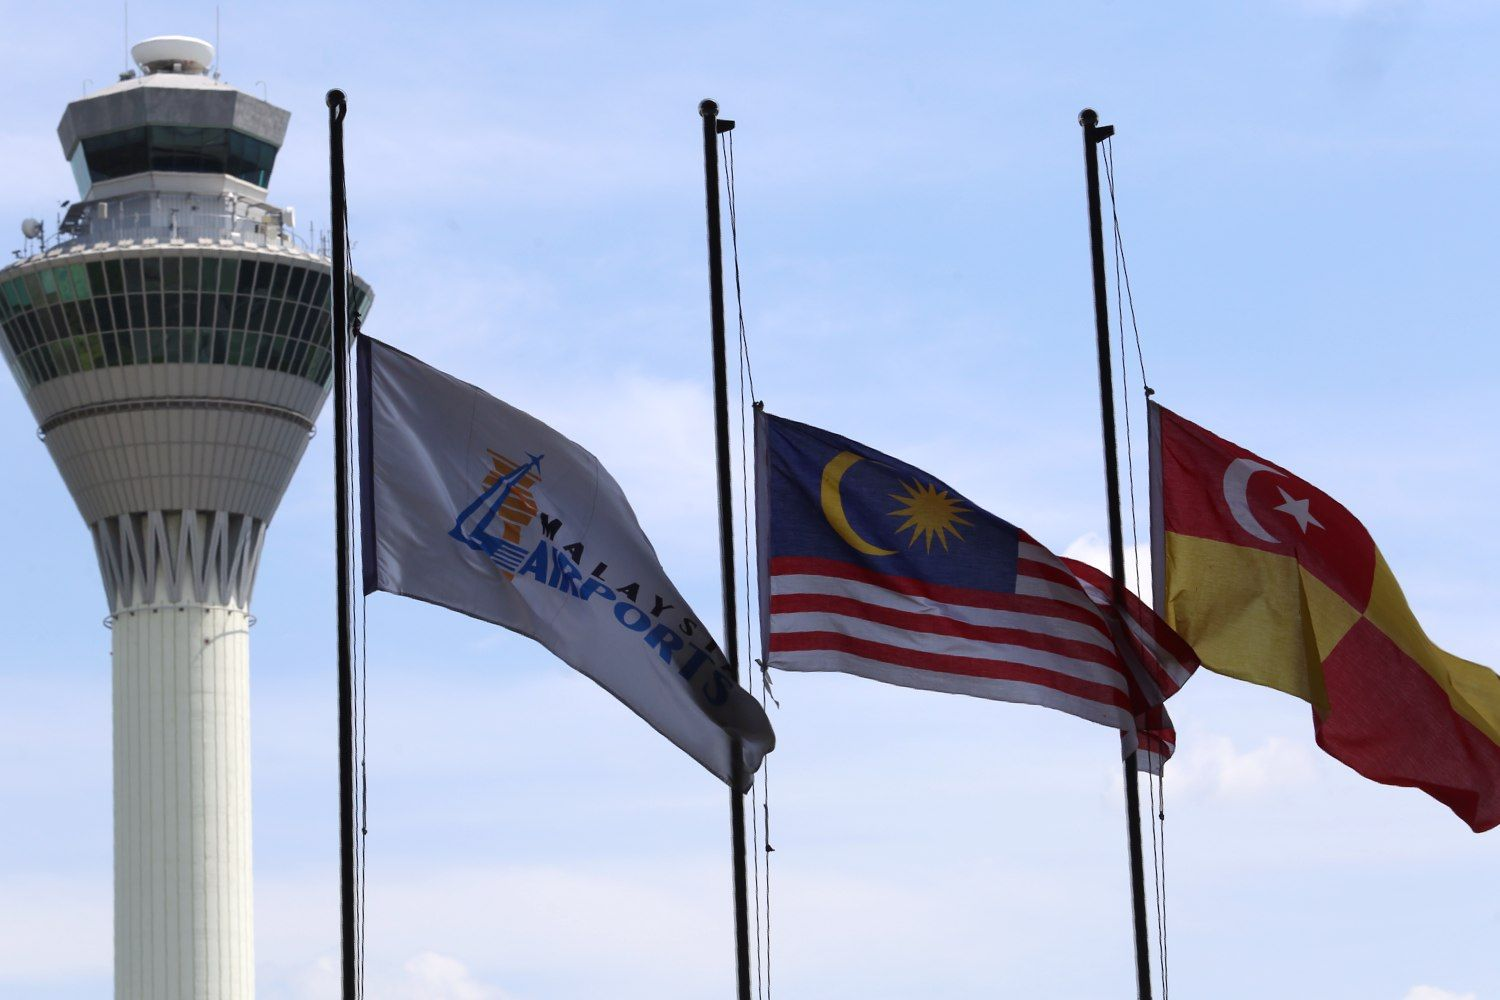 The government has decided that the national flag be flown at half-mast throughout the country beginning tonight until Monday (July 21) following the tragedy that befell the Malaysia Airlines (MAS) flight MH17 that was believed to have been shot down in